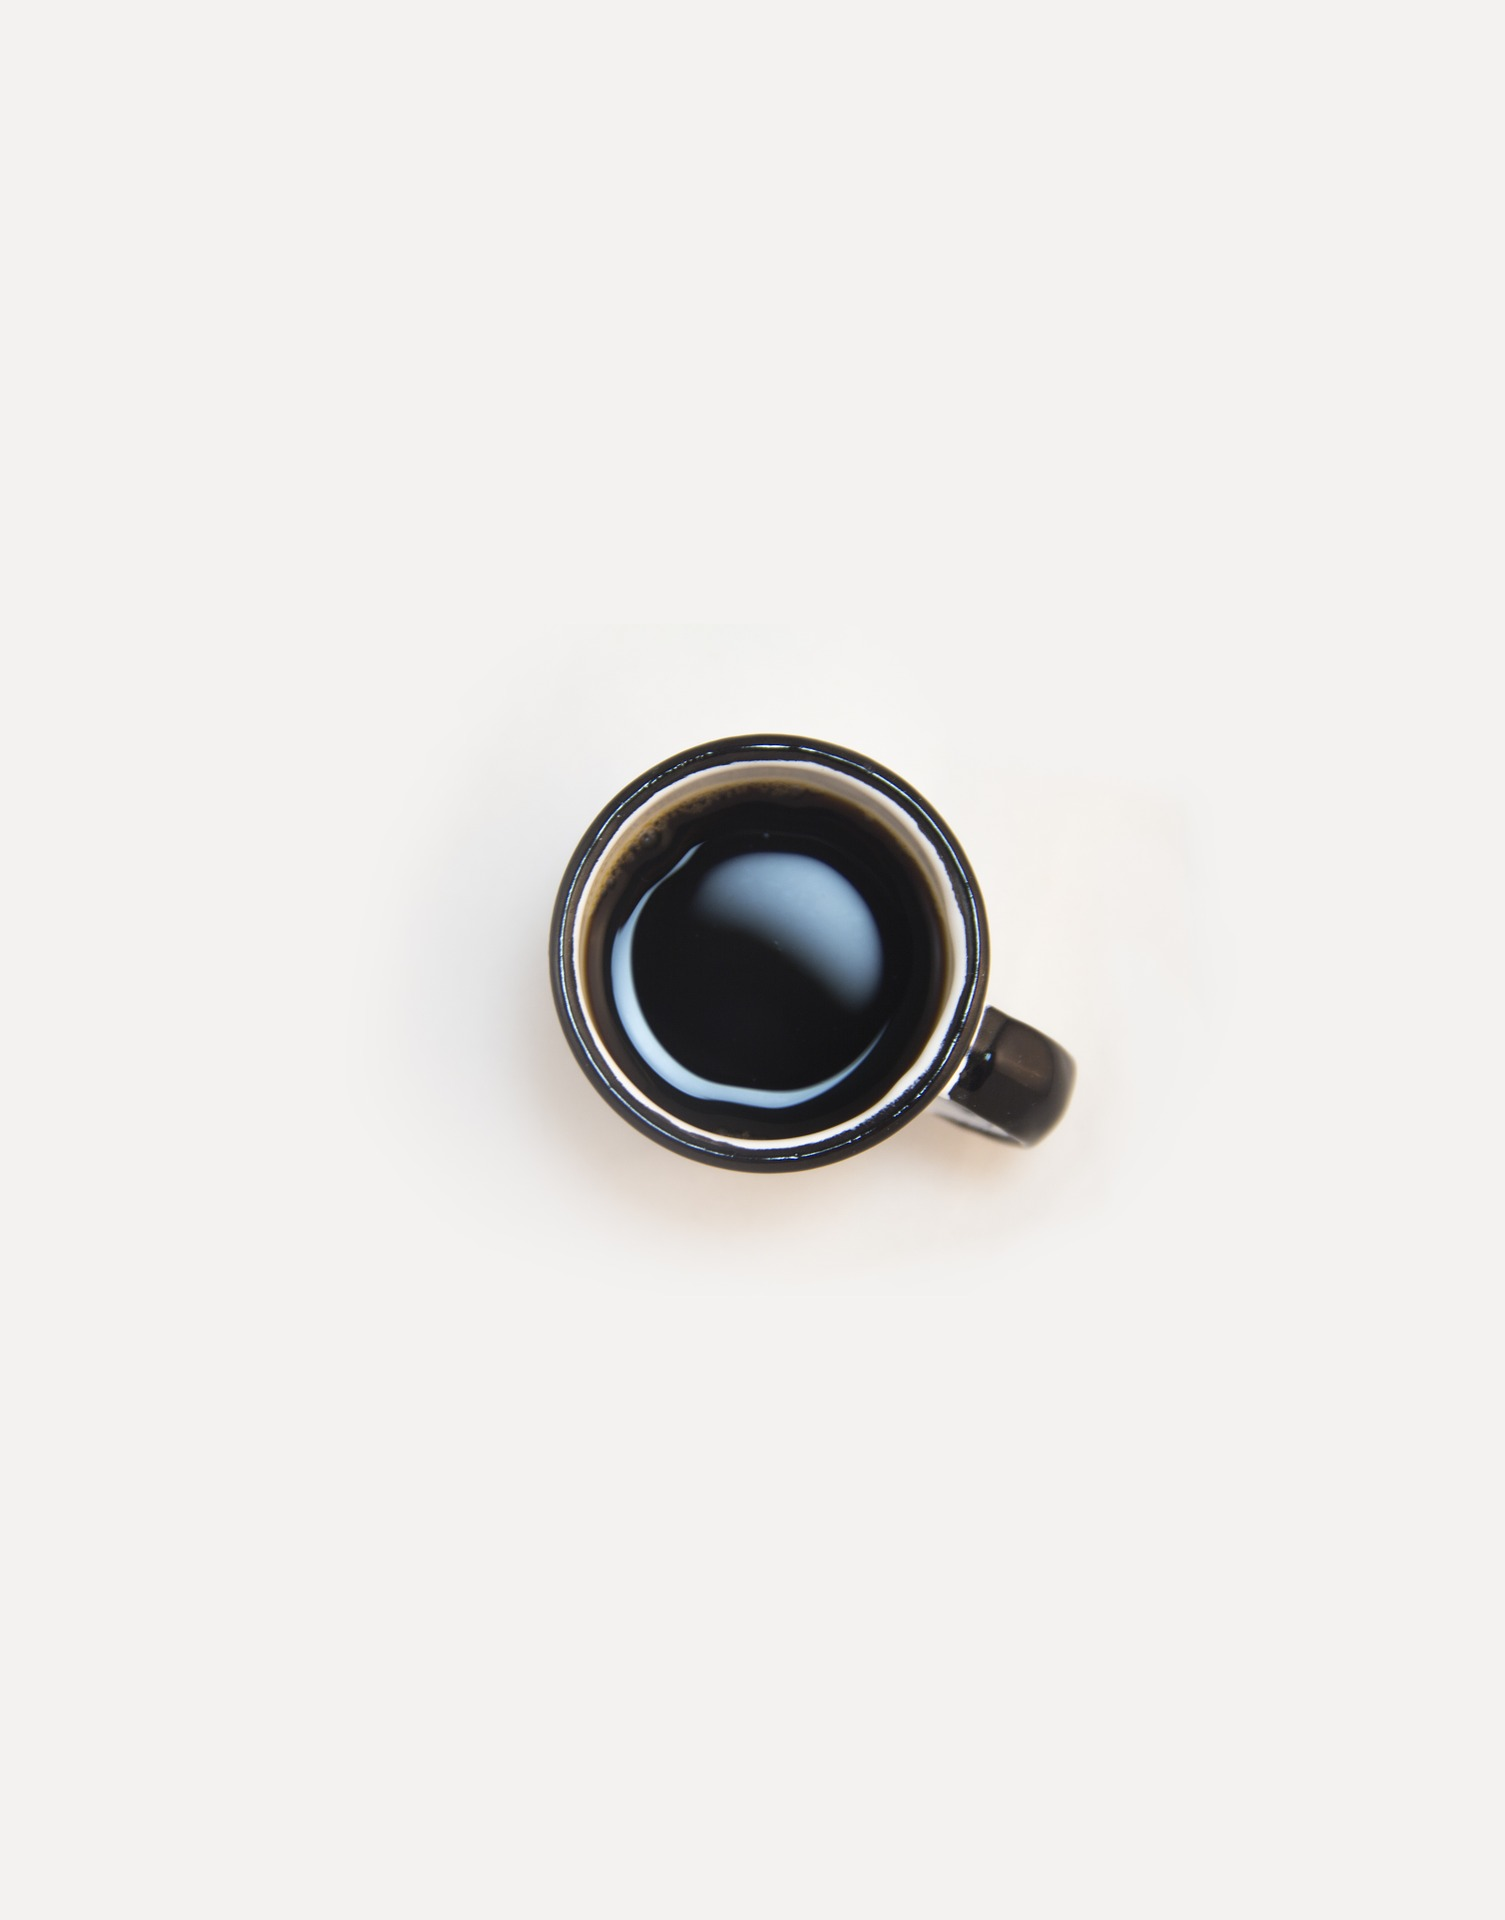 Recycleable K Cup Brands